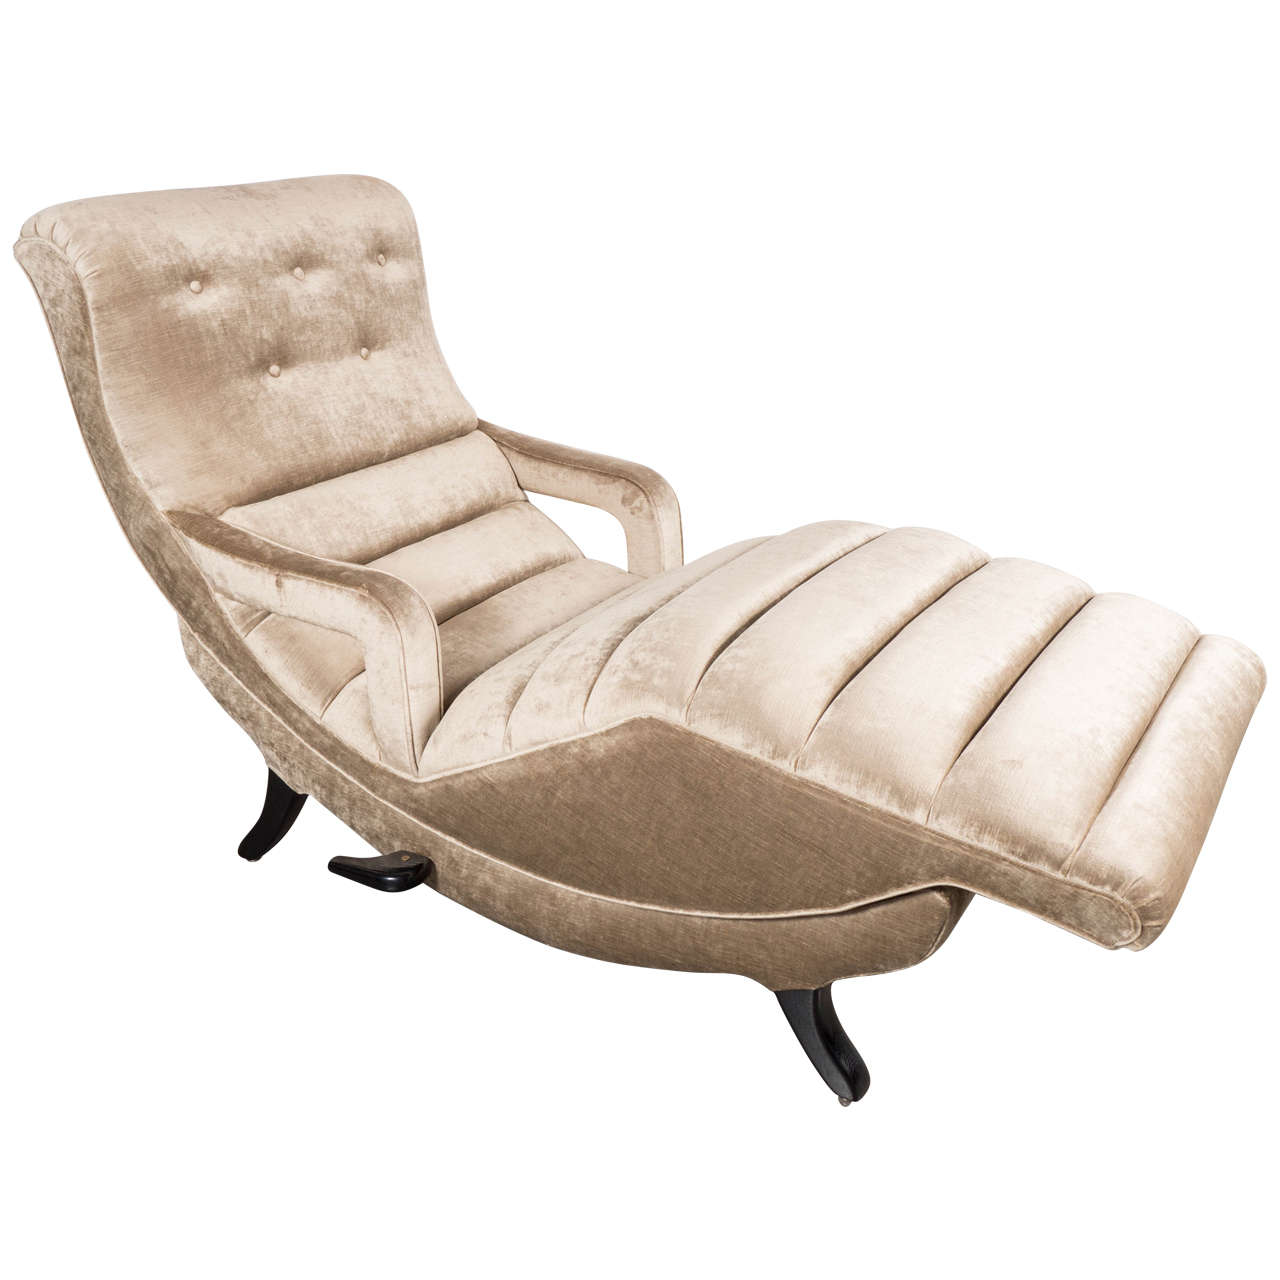 Sophisticated Mid-Century Modernist Adjustable Chaise at ...